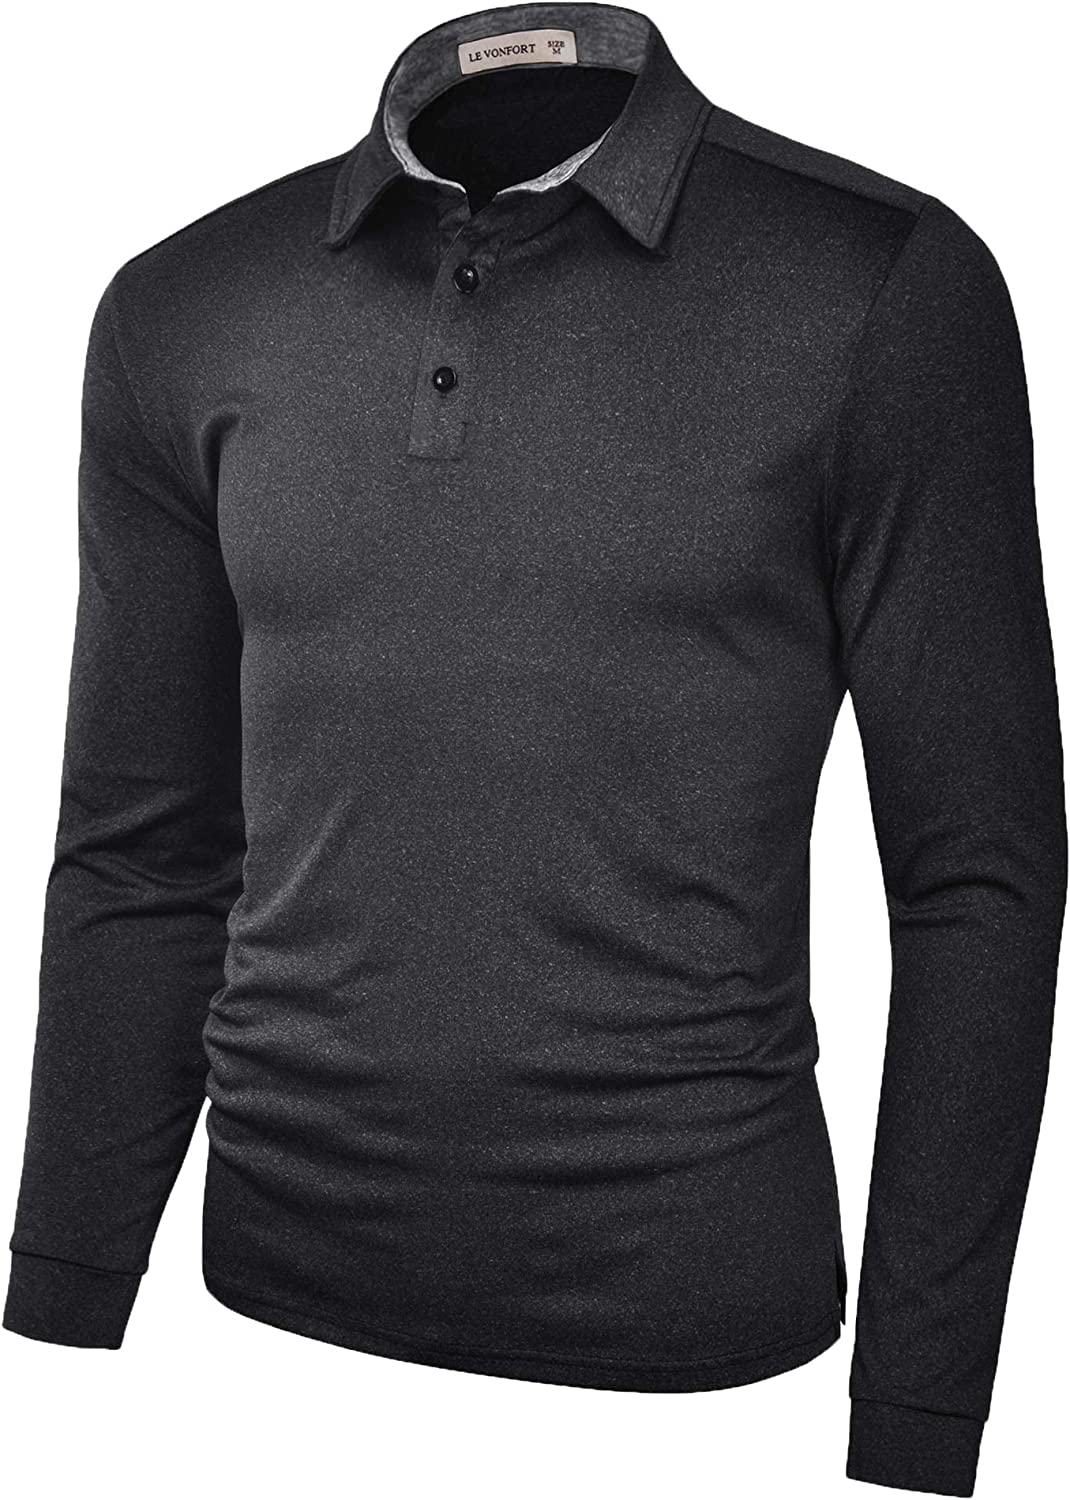 Moisture Wicking Long Sleeve Shirts for Polo Men Golf At Minneapolis Max 58% OFF Mall Fit Dry